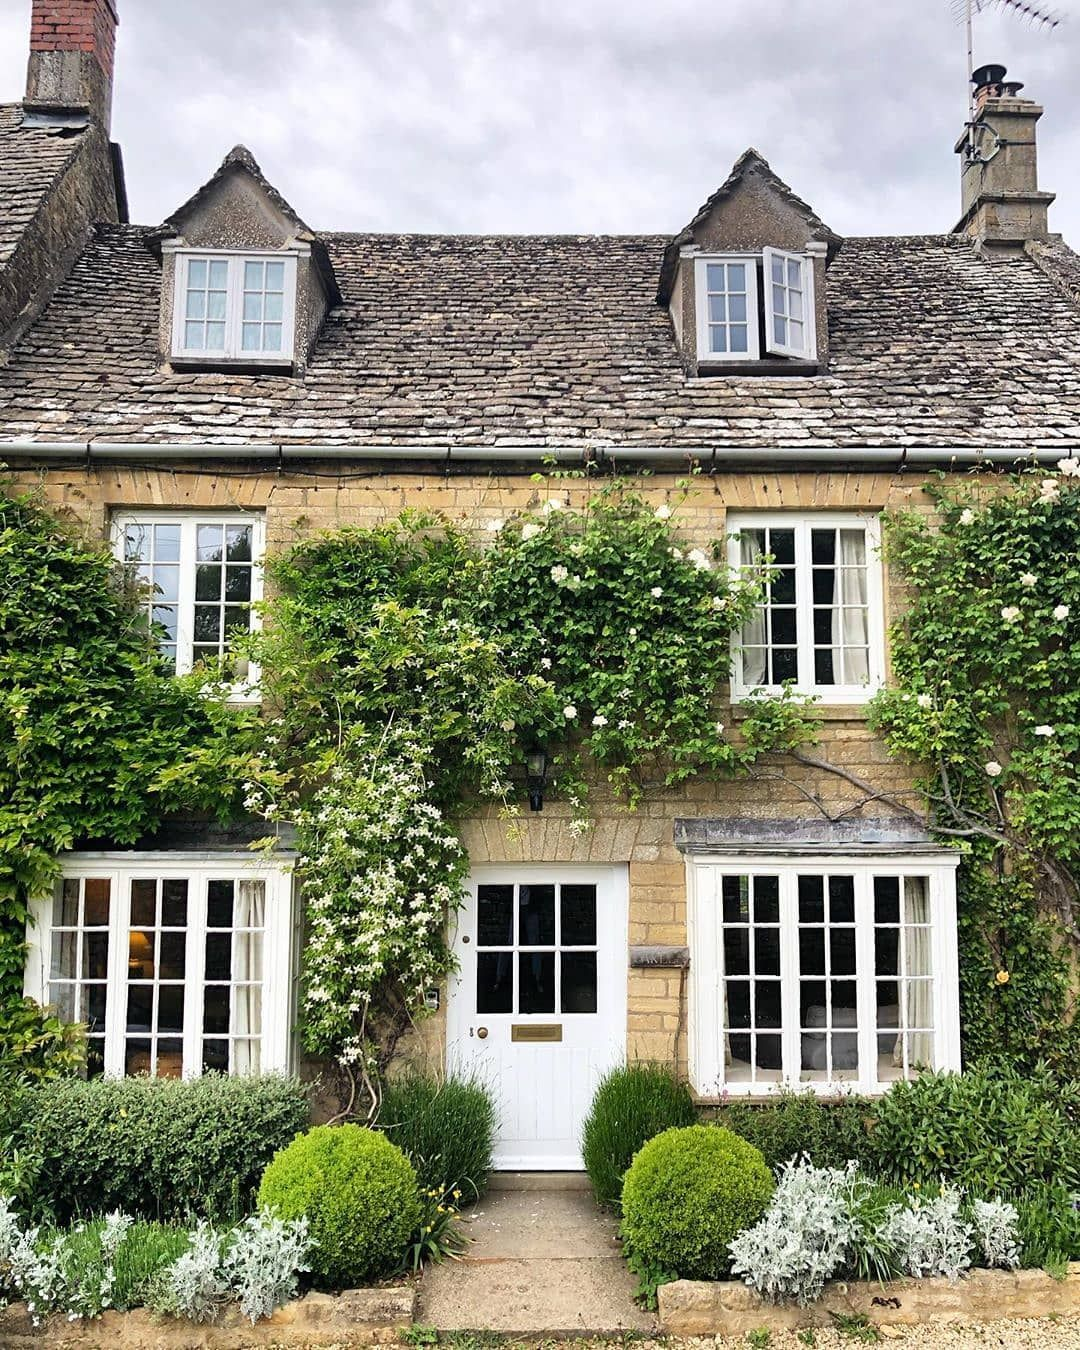 Magali Tallon On Instagram Cotswoldinterior Cotswolds Cotswold Cottage Cottages Thecottagejournal Cott English House Cottage Exterior English Cottage